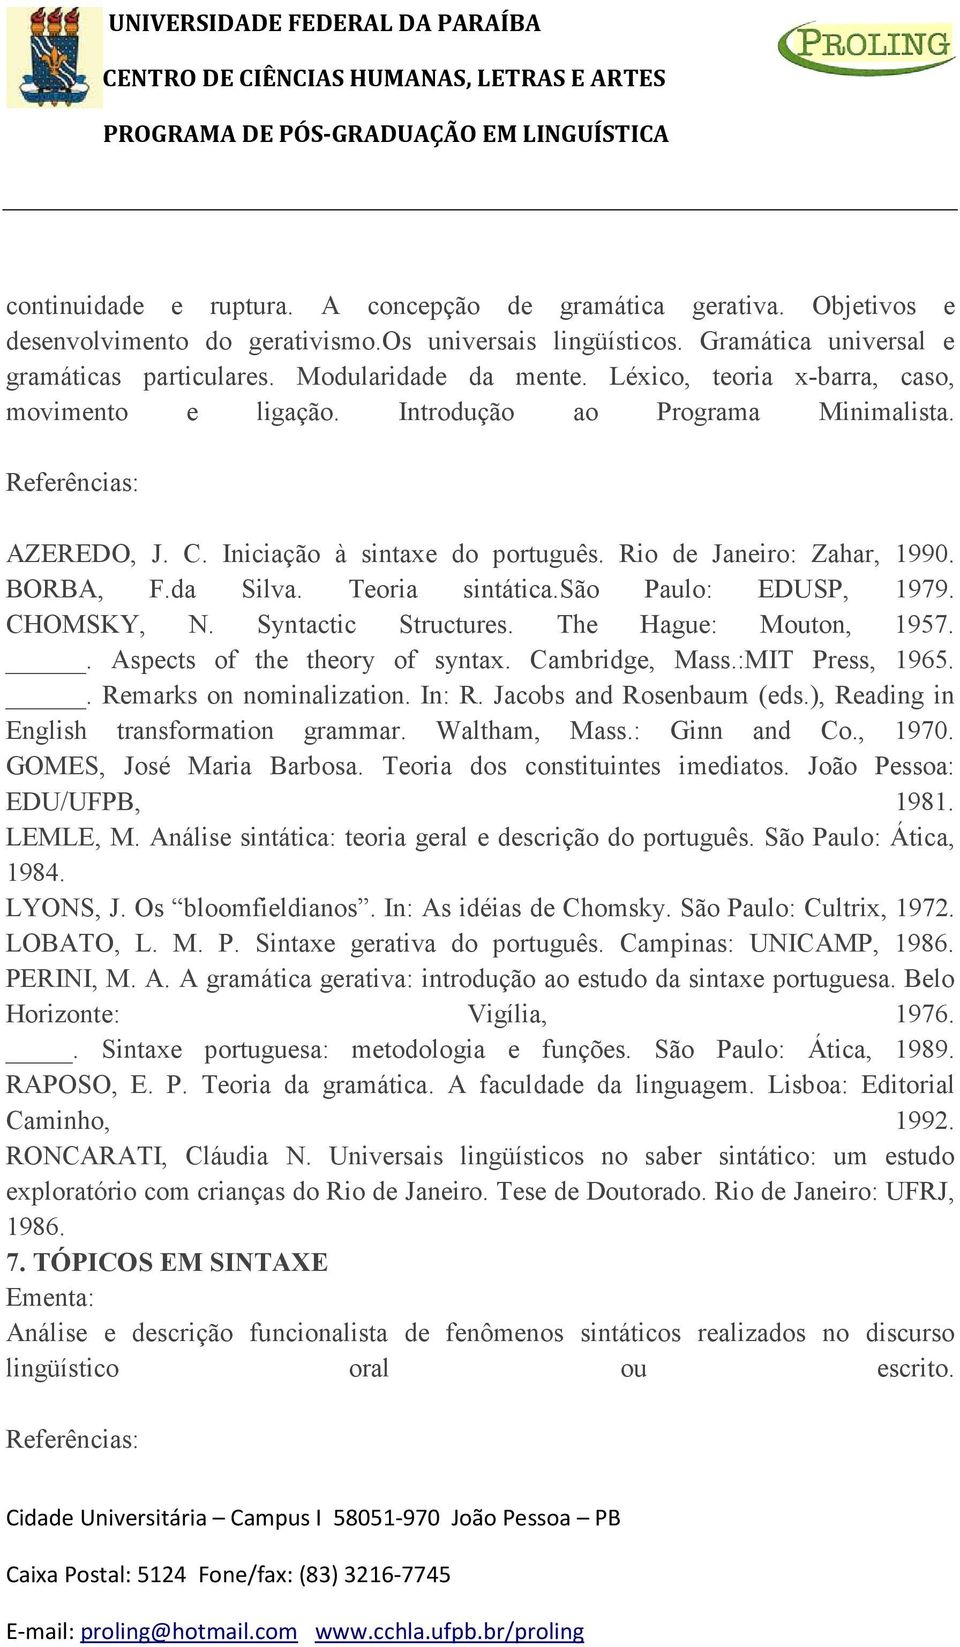 Teoria sintática.são Paulo: EDUSP, 1979. CHOMSKY, N. Syntactic Structures. The Hague: Mouton, 1957.. Aspects of the theory of syntax. Cambridge, Mass.:MIT Press, 1965.. Remarks on nominalization.